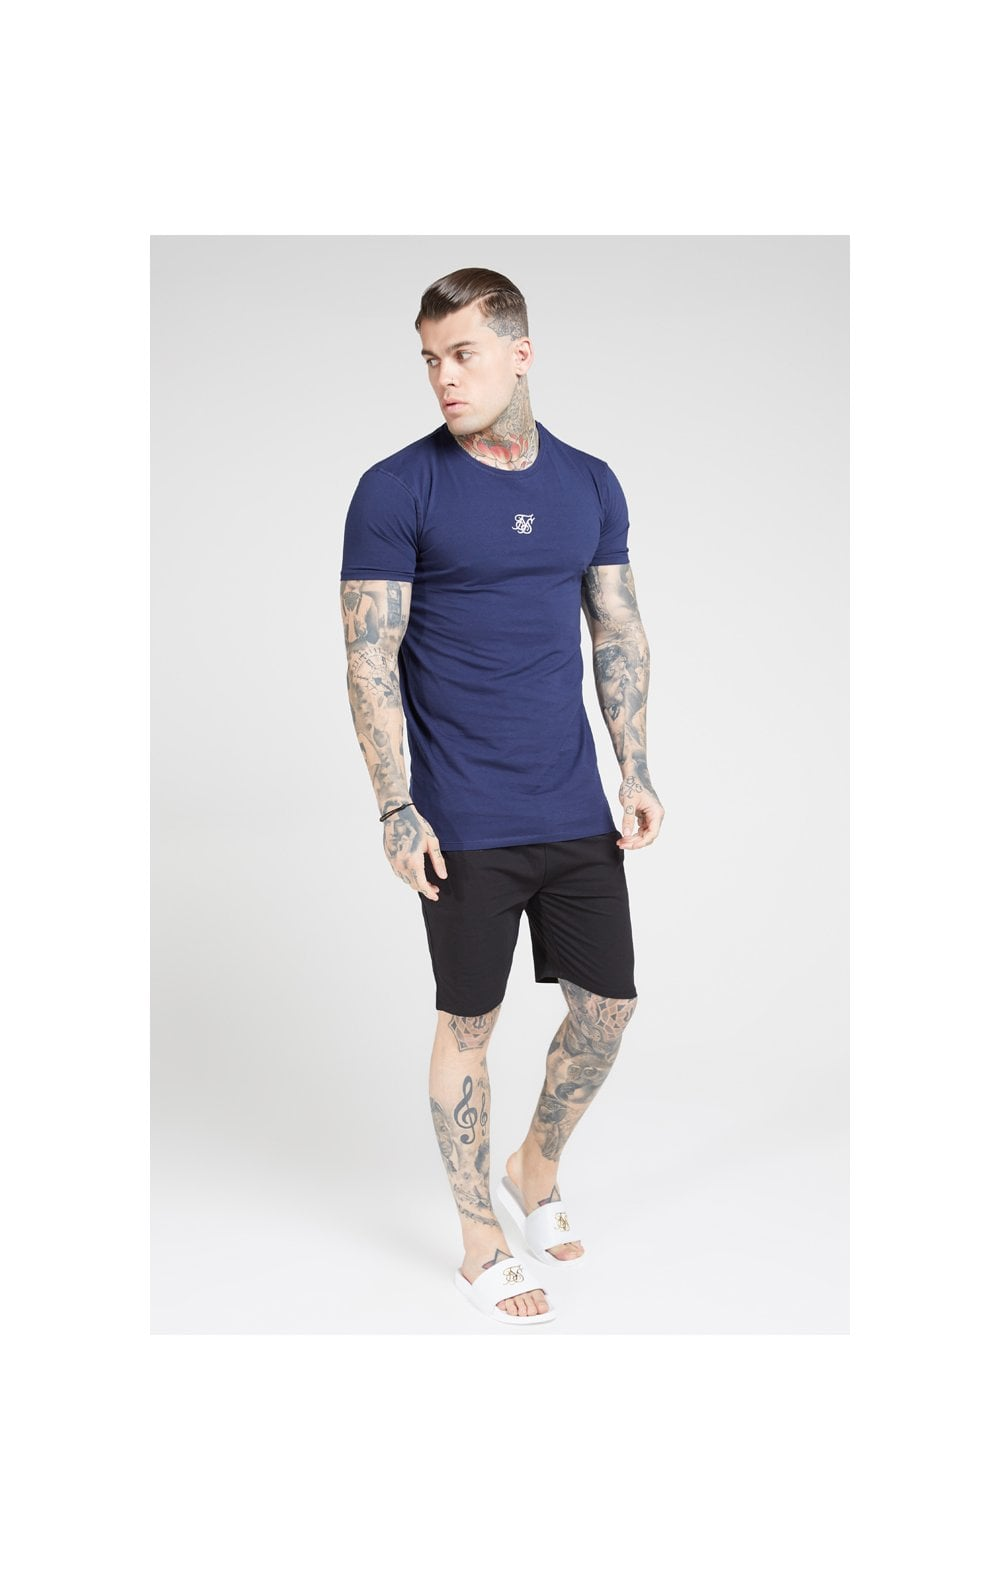 Load image into Gallery viewer, SikSilk Lounge Tee - White & Navy (2 Pack) - 1 White Tee & 1 Navy Tee (2)